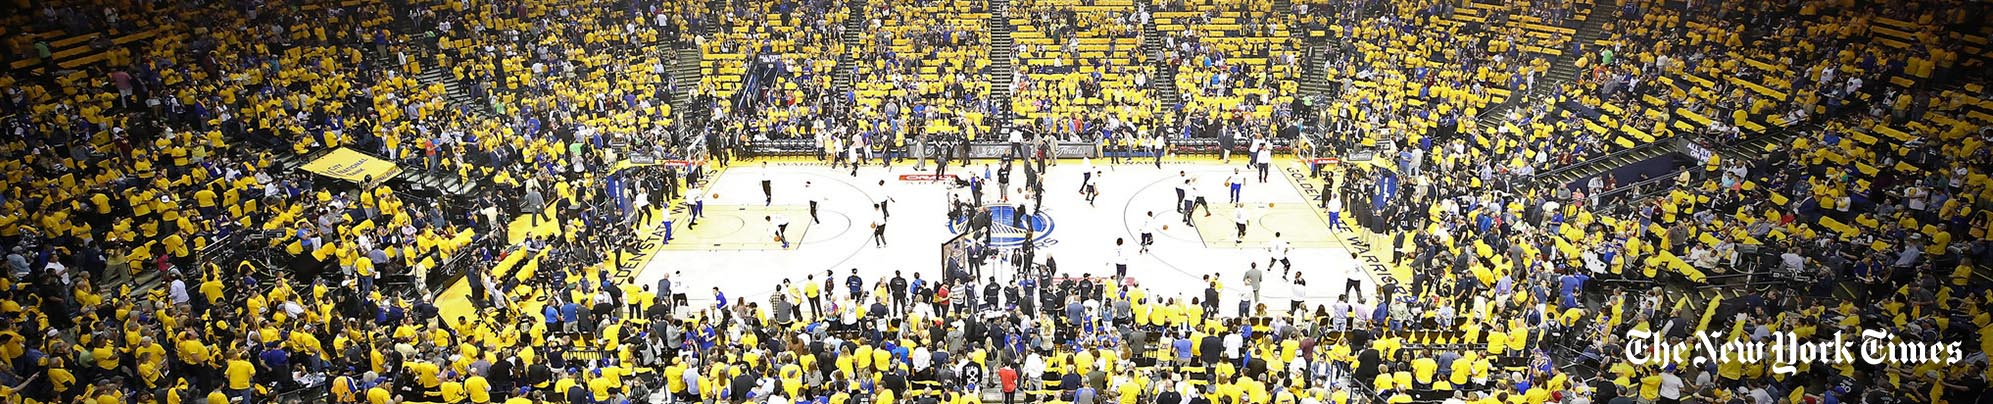 Golden State Warriors' arena